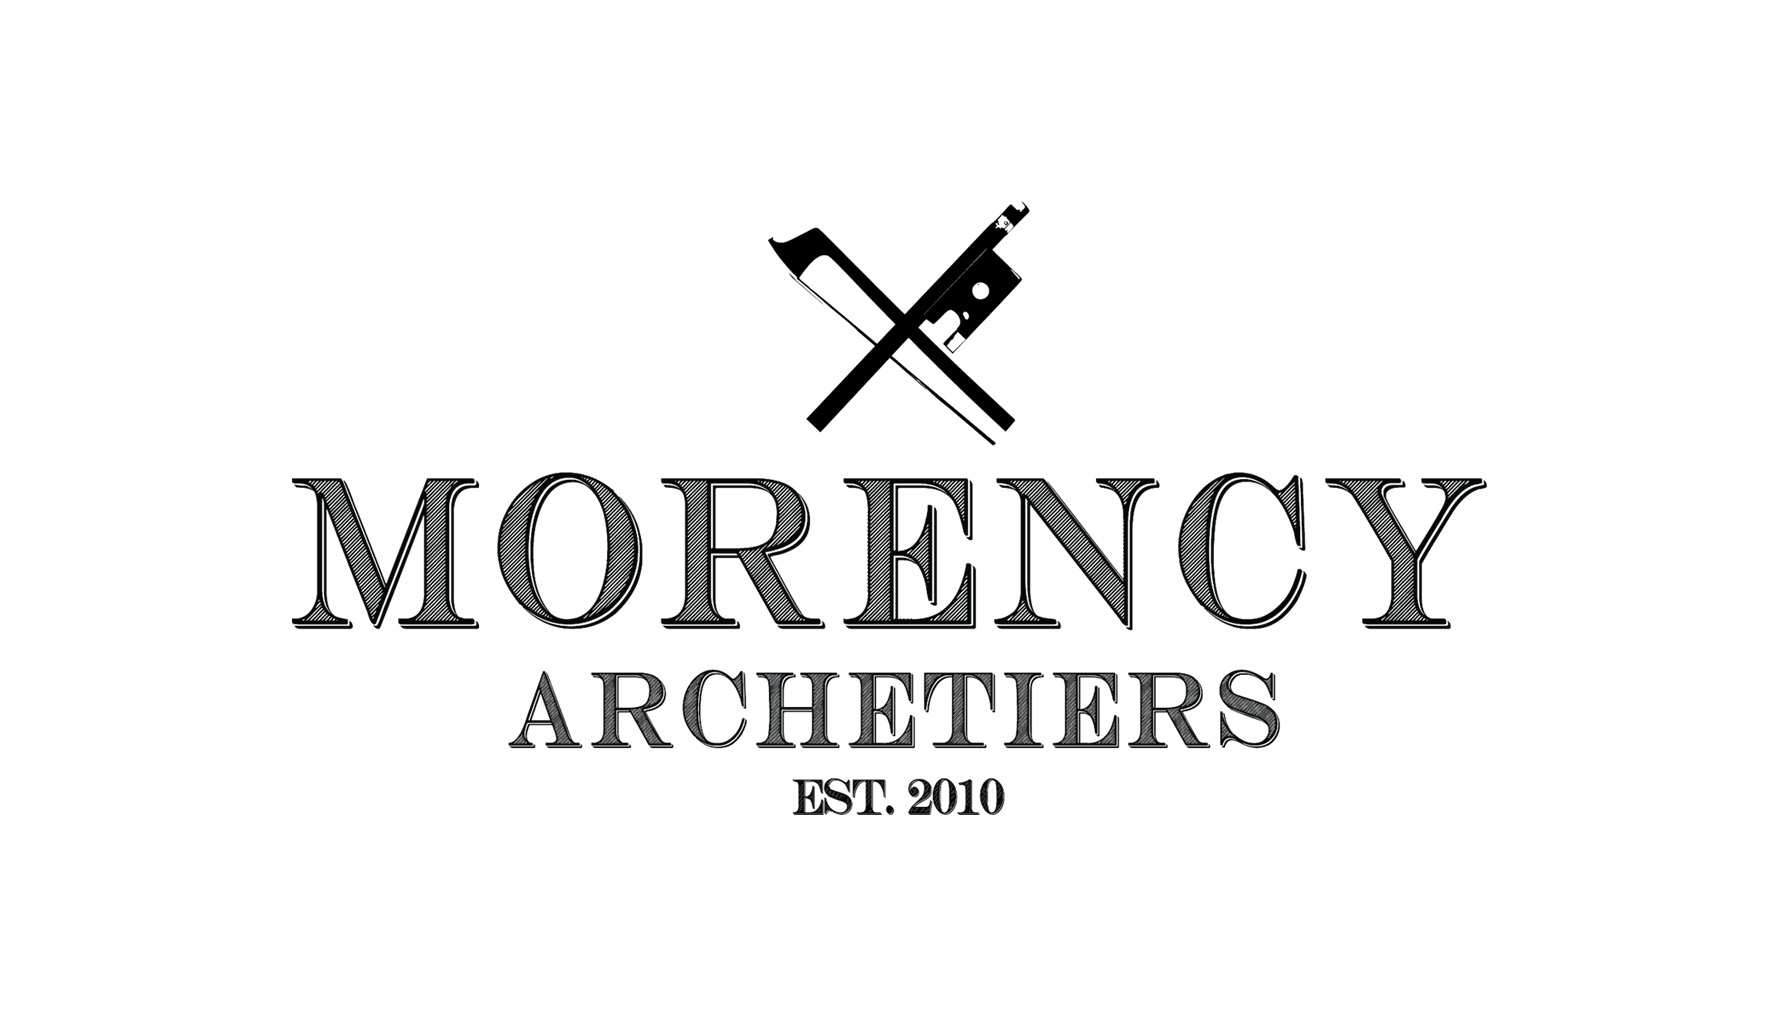 Atelier Morency